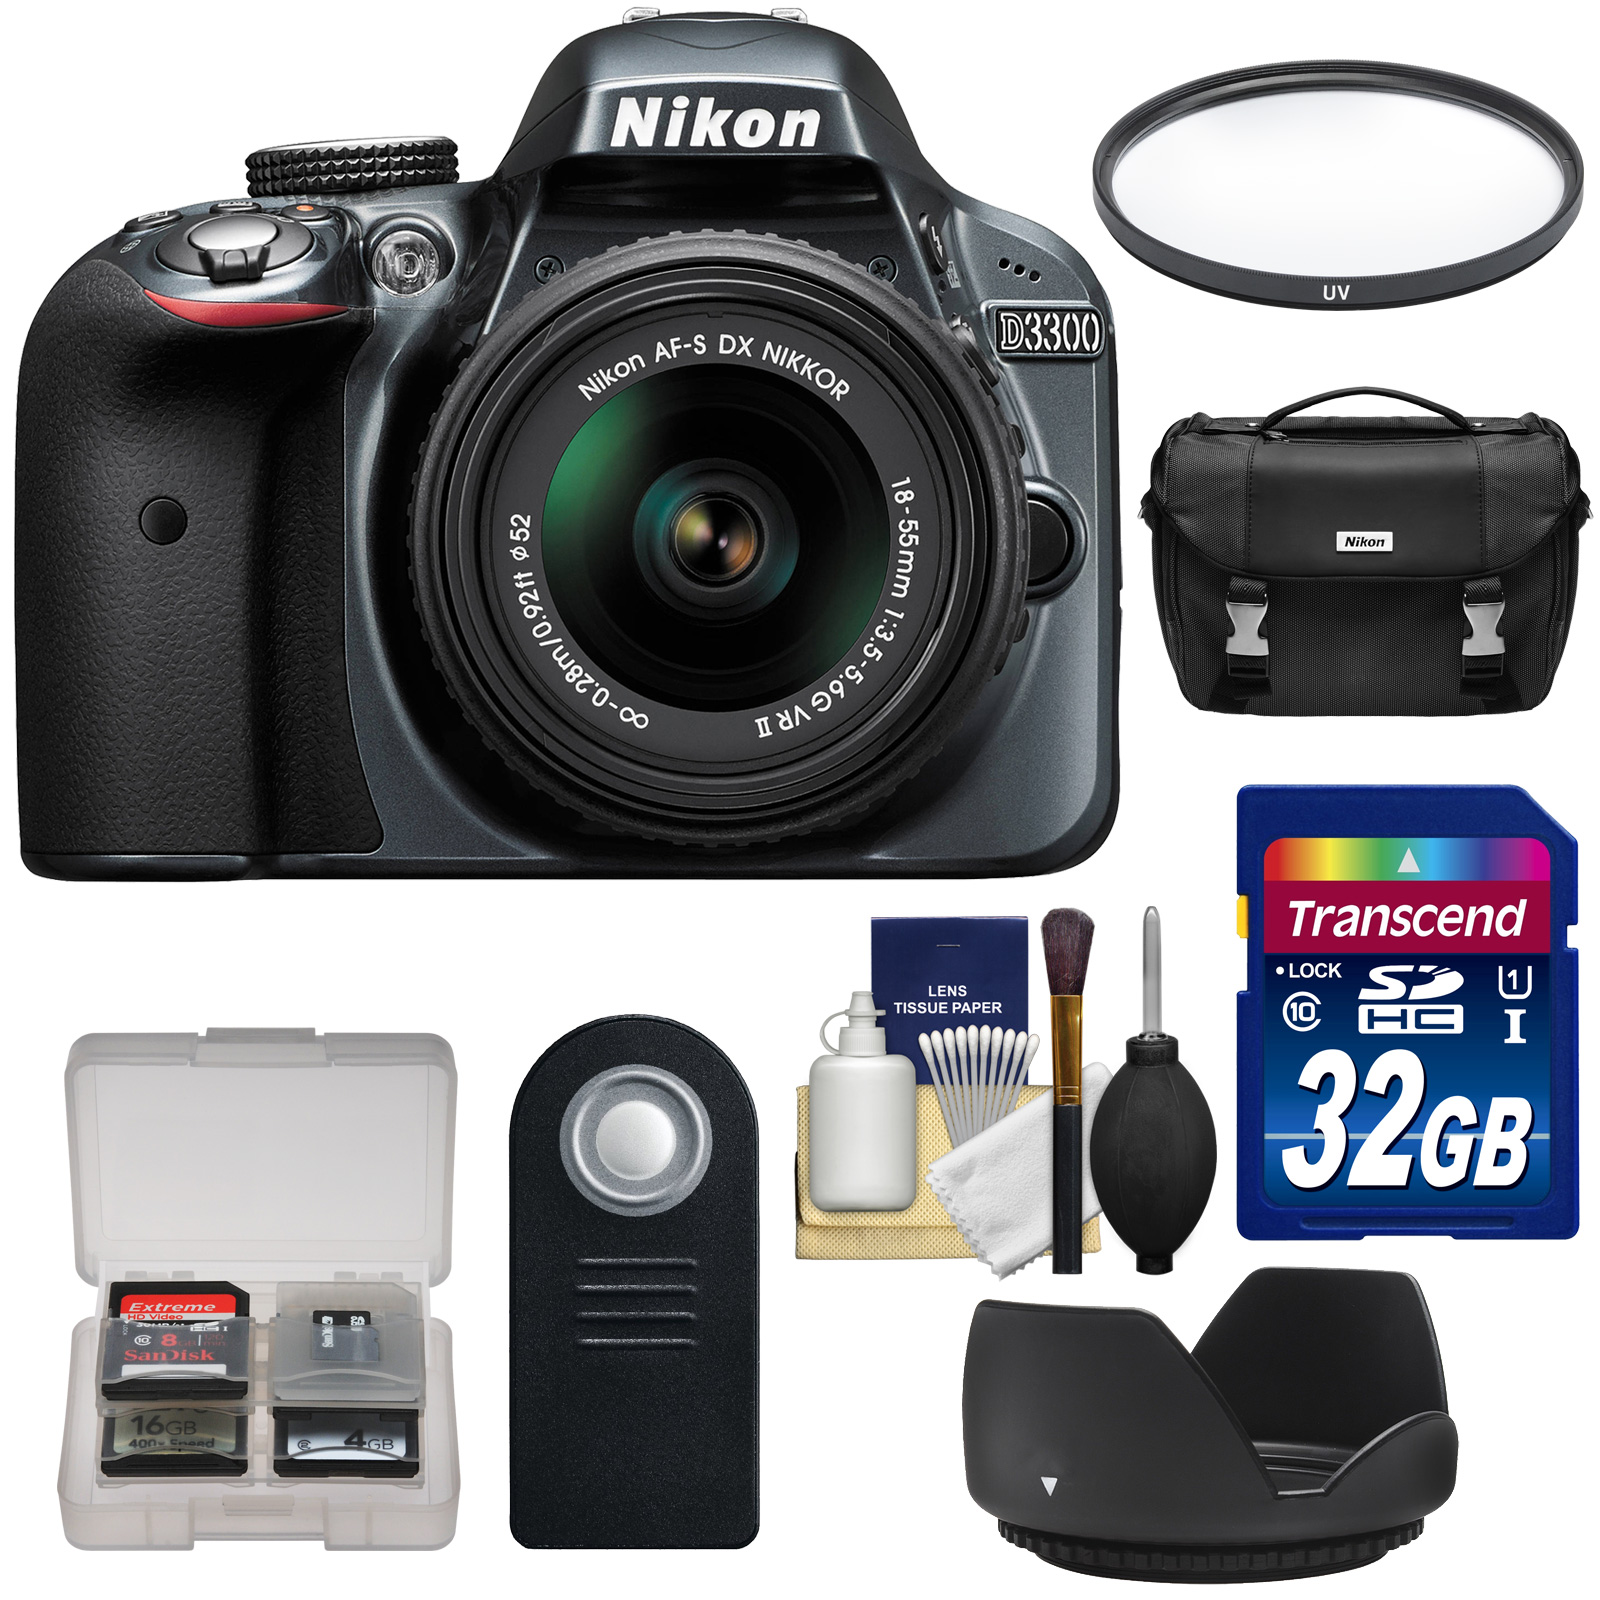 Nikon D3300 Digital SLR Camera & 18-55mm G VR DX II AF-S Zoom Lens (Grey) with 32GB Card + Case + Filter + Hood + Remote + Kit